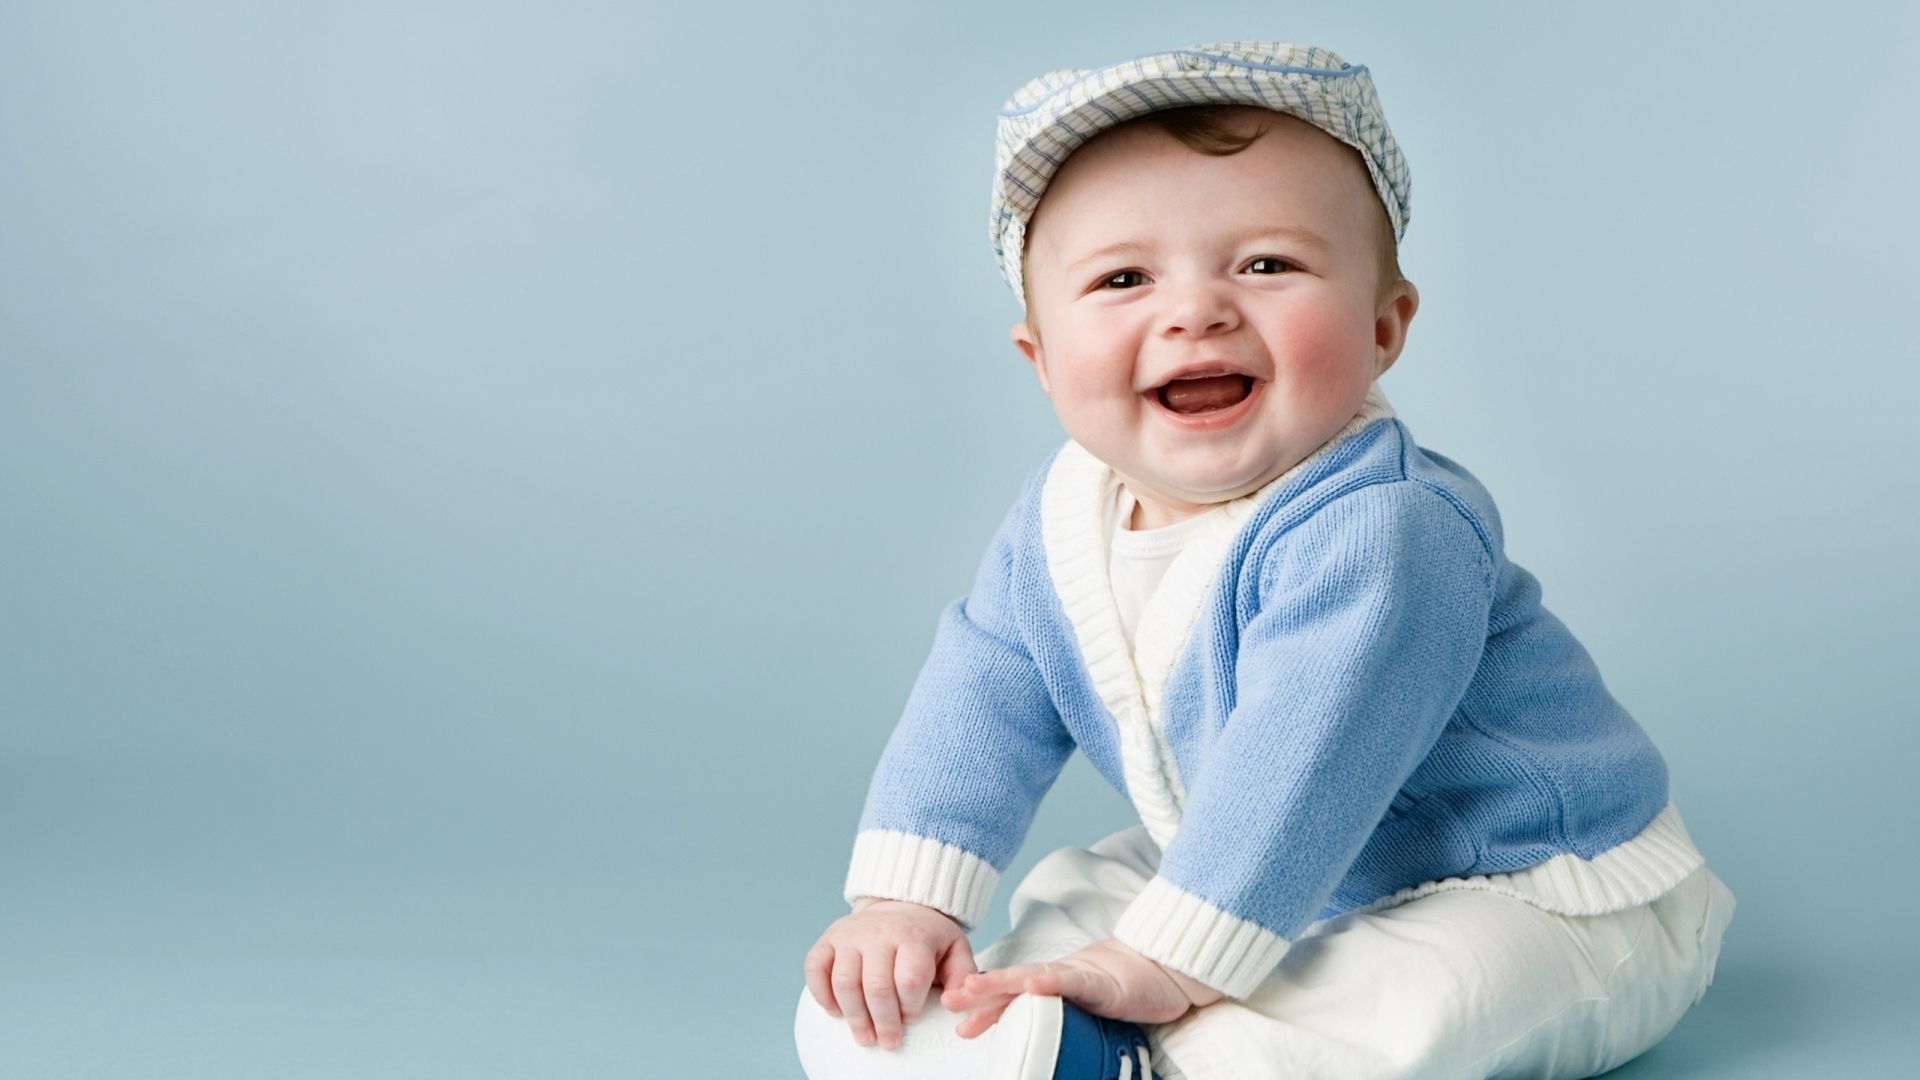 1920x1080 Funny Baby Wallpaper